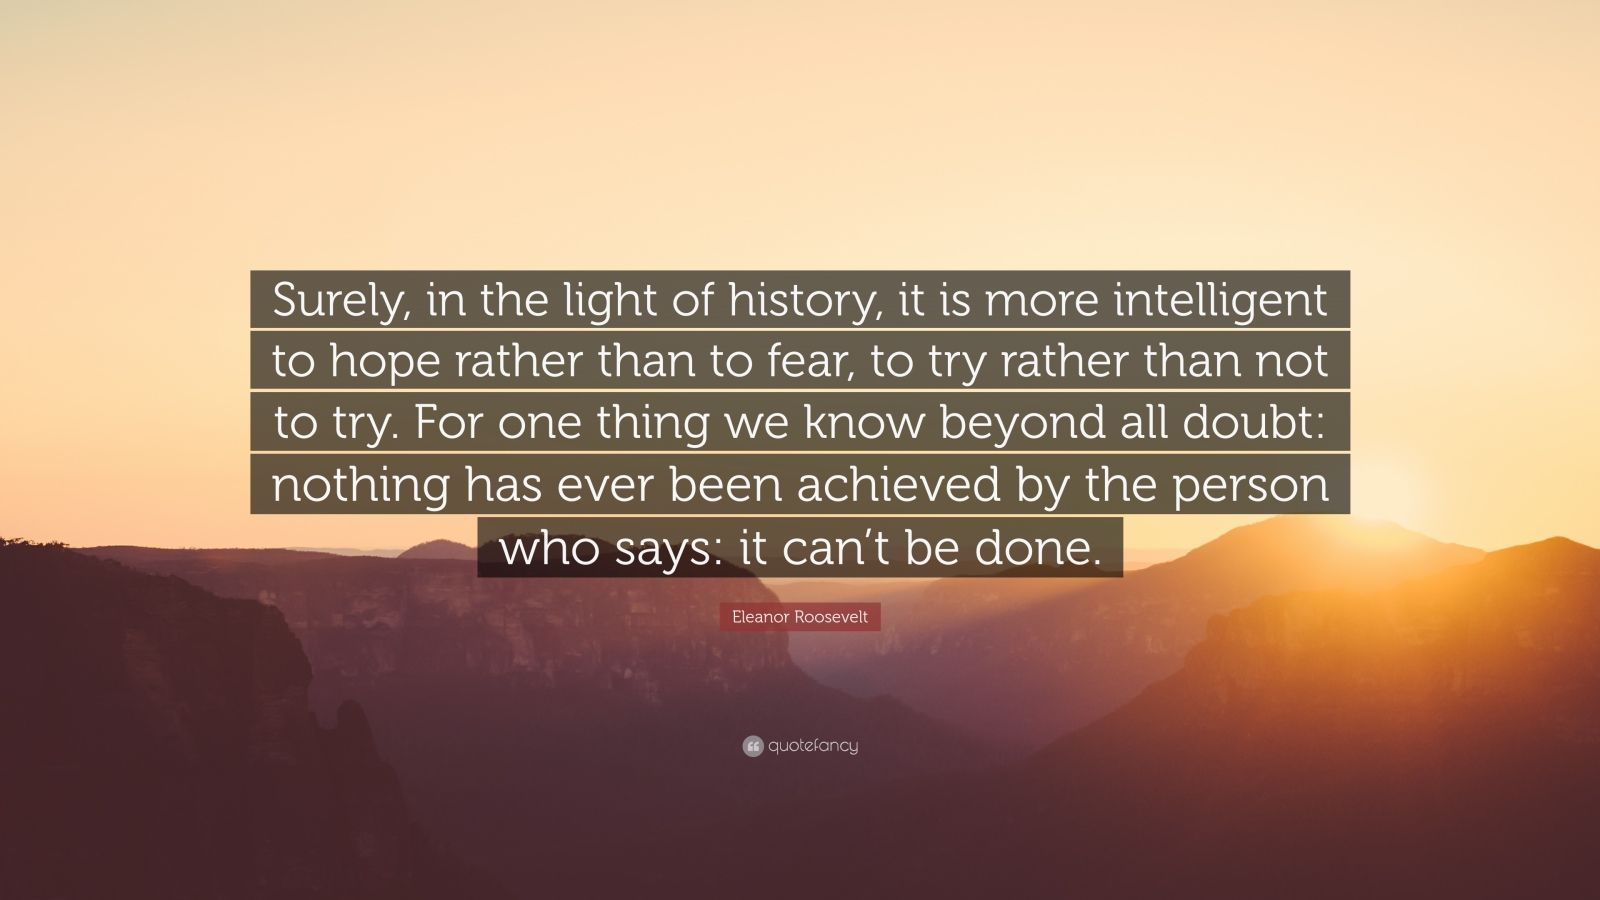 """Eleanor Roosevelt Quote: """"Surely, in the light of history, it is more intelligent to hope rather than to fear, to try rather than not to try. For one thing we know beyond all doubt: nothing has ever been achieved by the person who says: it can't be done."""""""